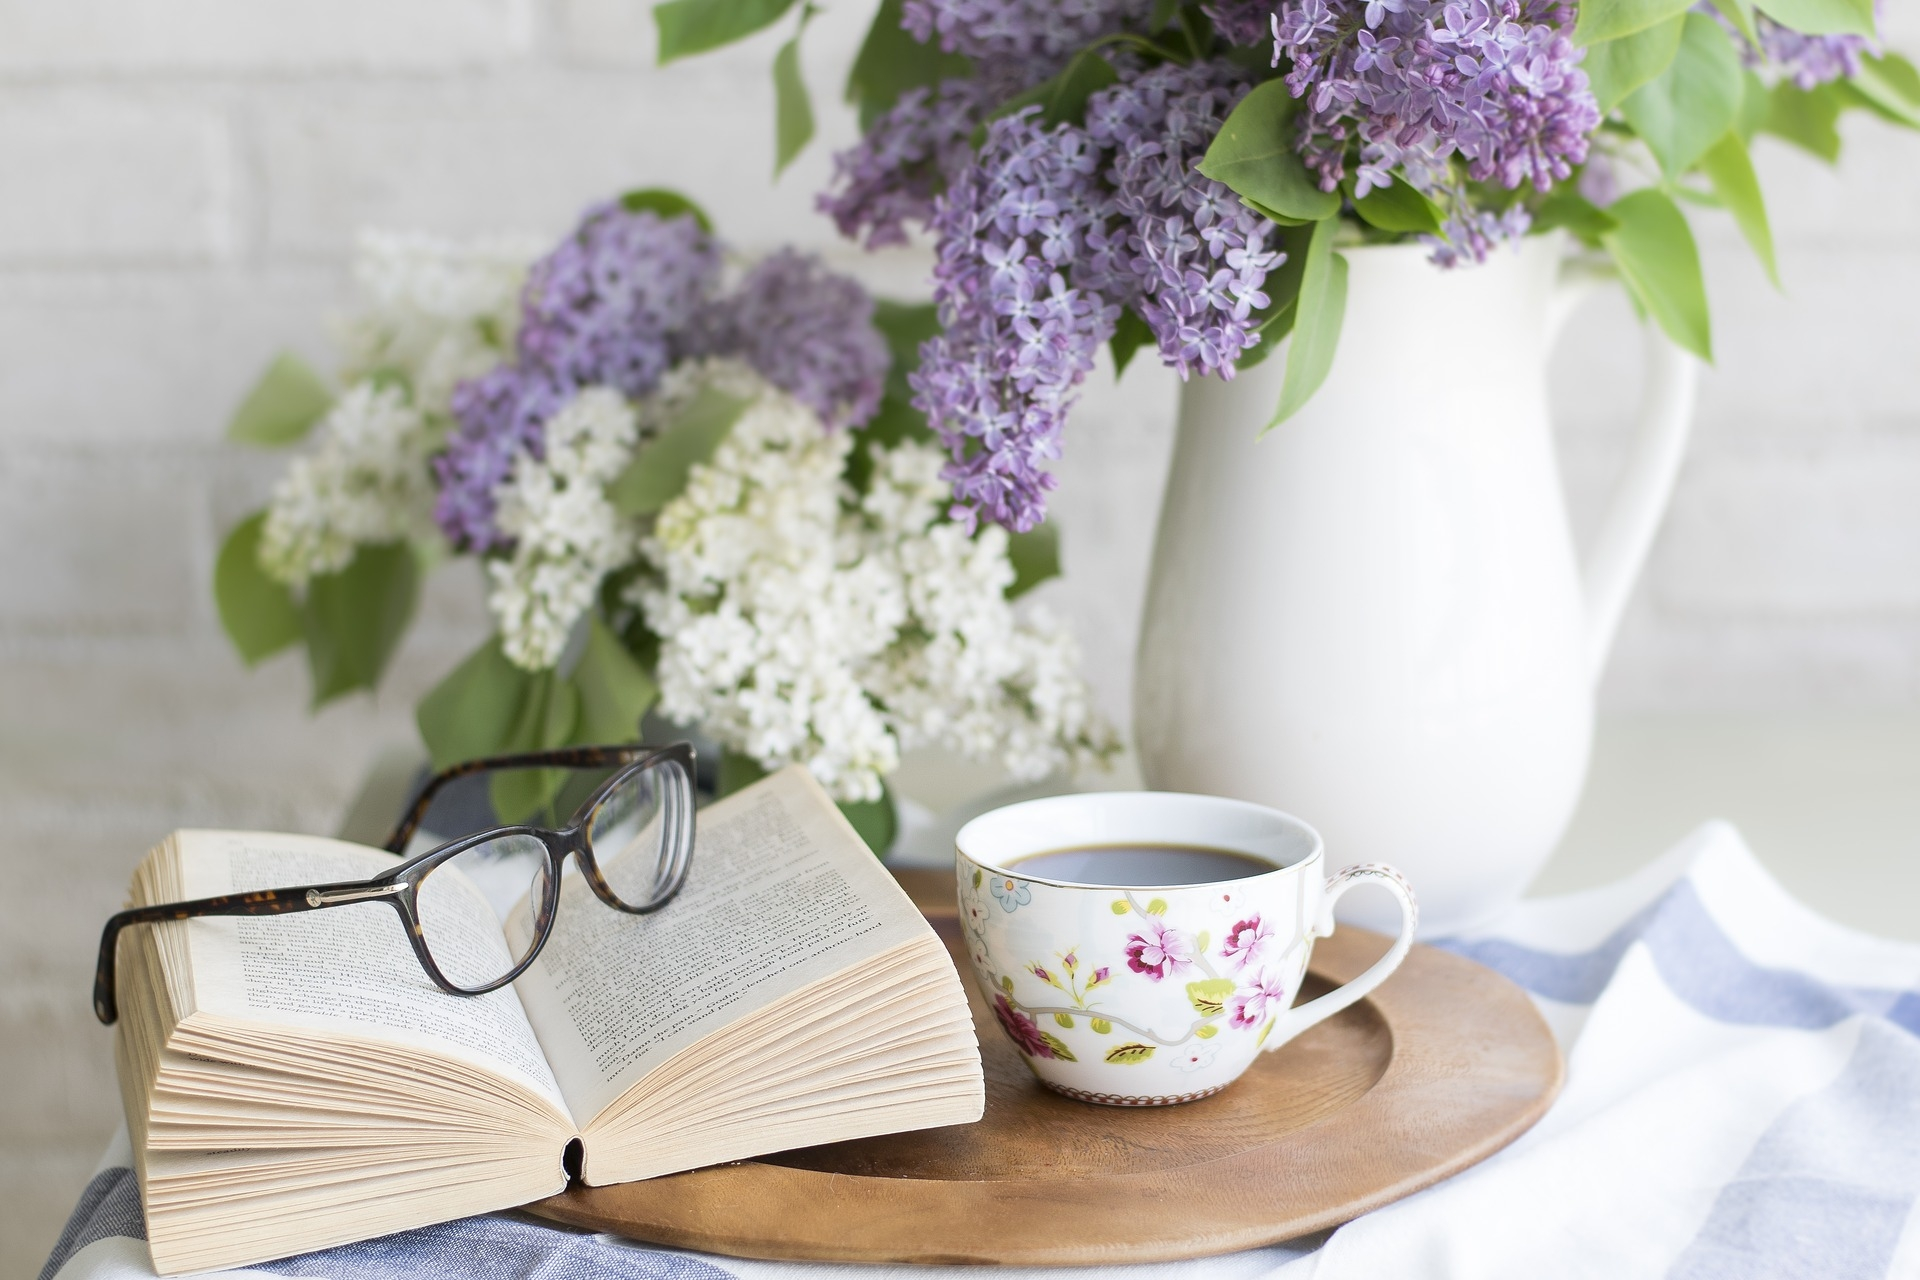 The LoveReading Book Club of the Month